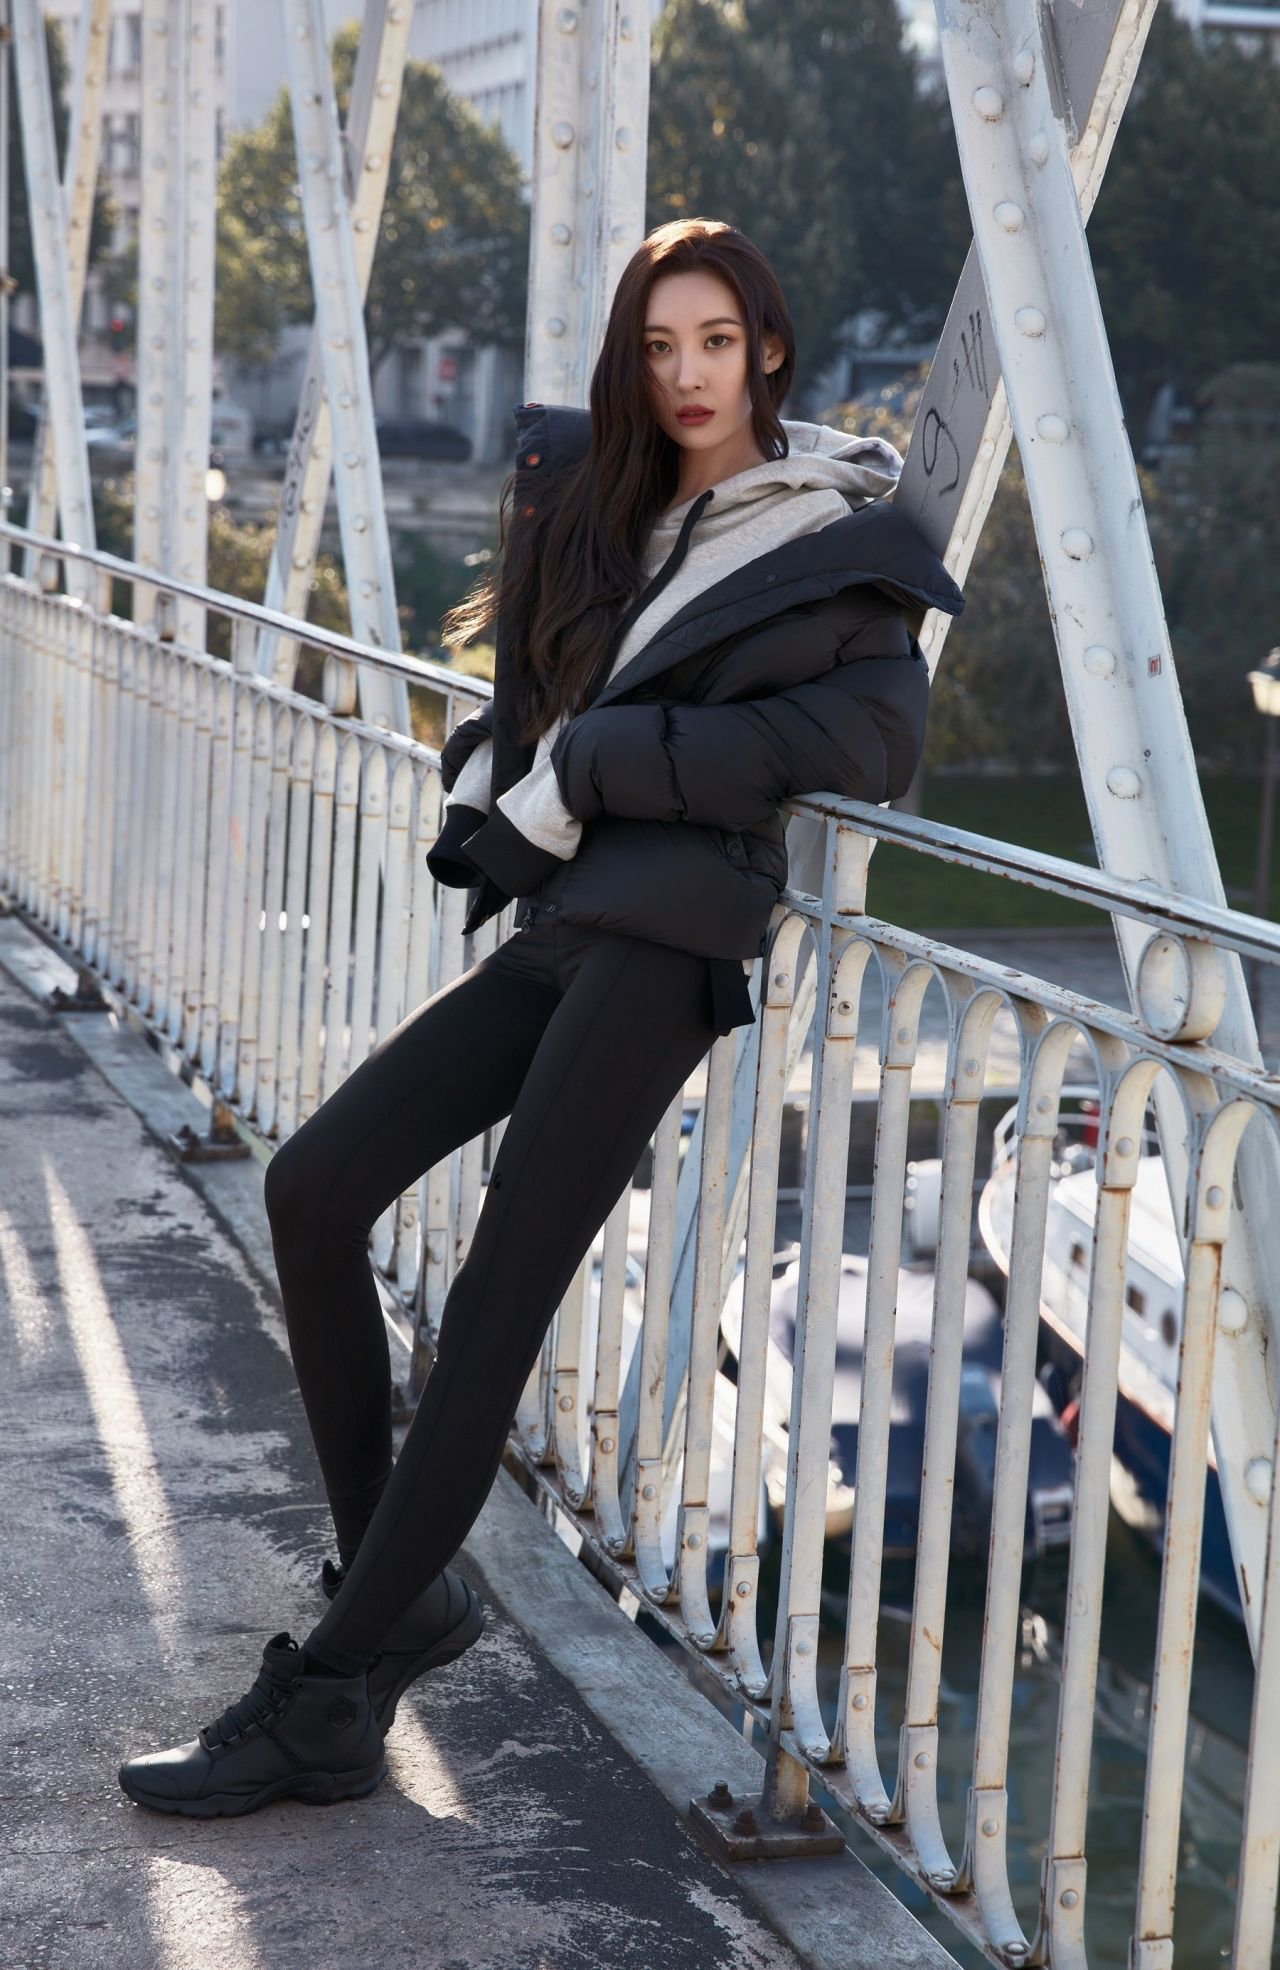 picture Lee sunmi photoshoot for head sports fall winter 2019